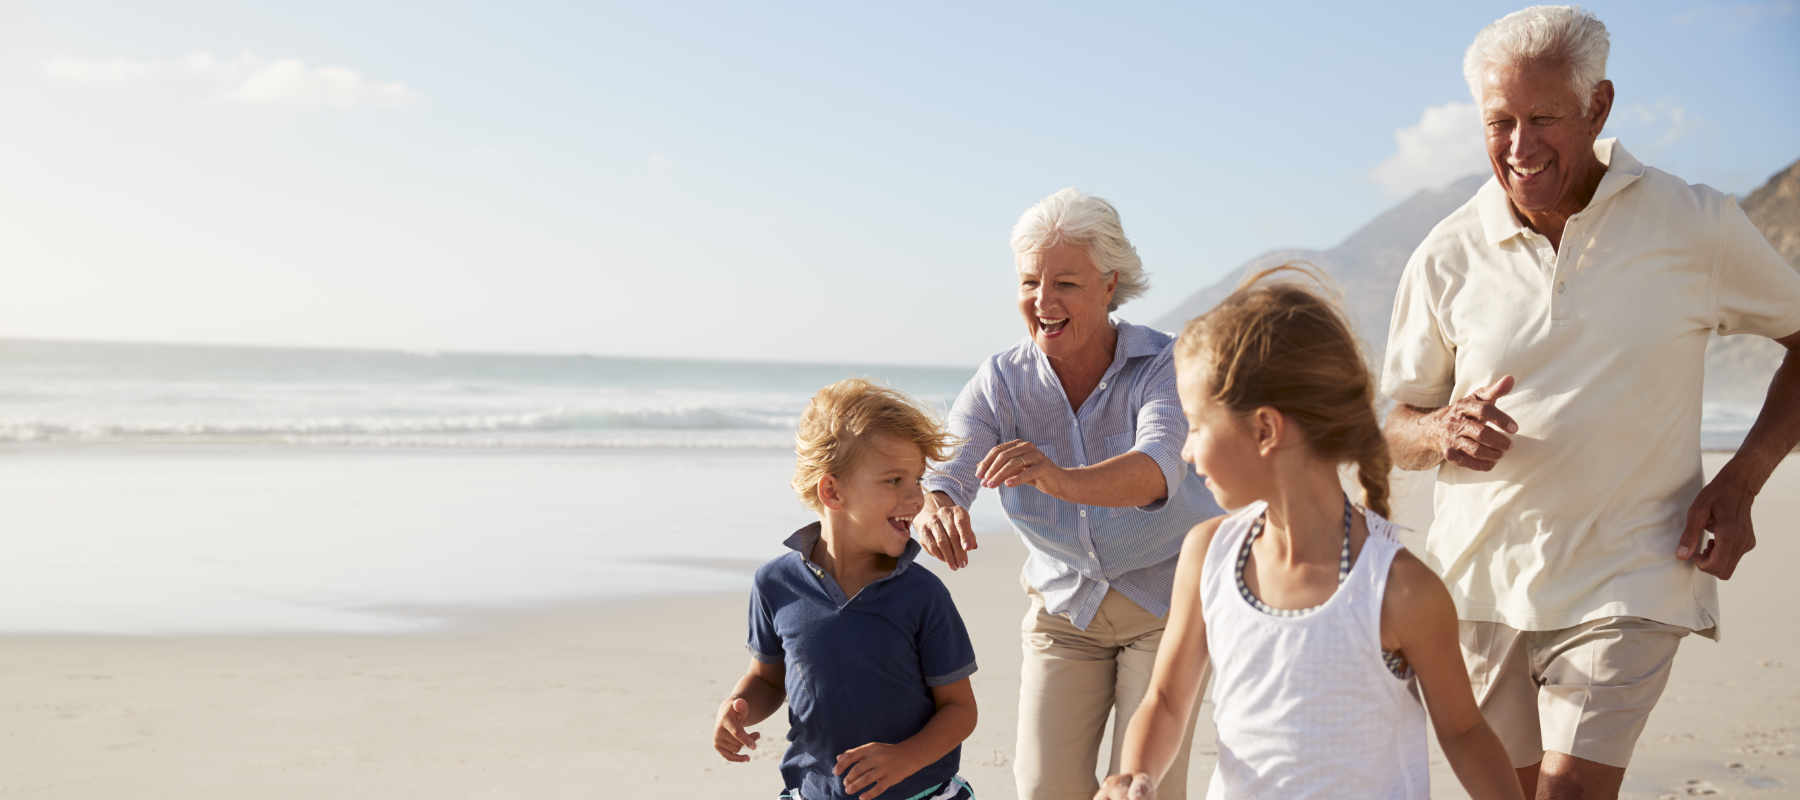 Image of grandparents and grandchildren on a beach as concept for over 50s insurance - including travel insurance, home insurance and cat insurance - with wise living over 50s insurance guides